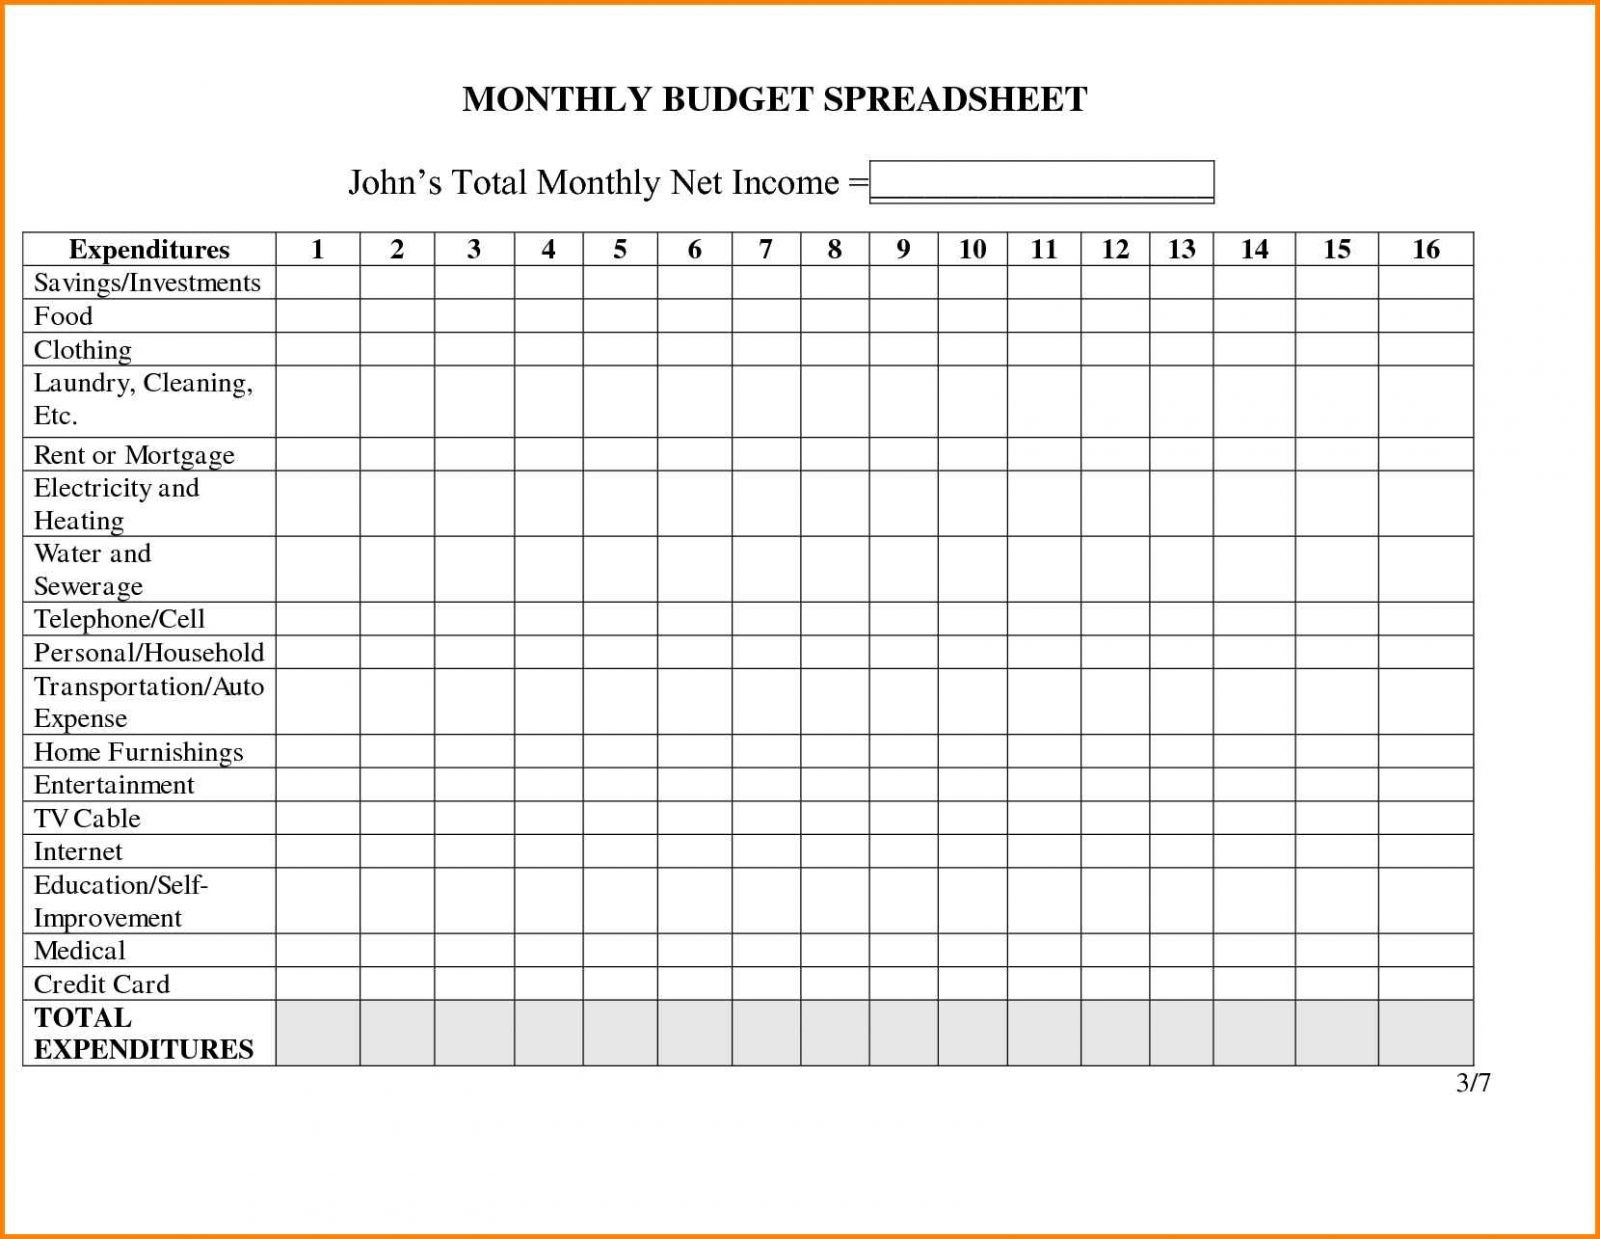 Rental Property Expenses Spreadsheet Template Within Expense Tracker Spreadsheet Lovely Rental Property Expenses